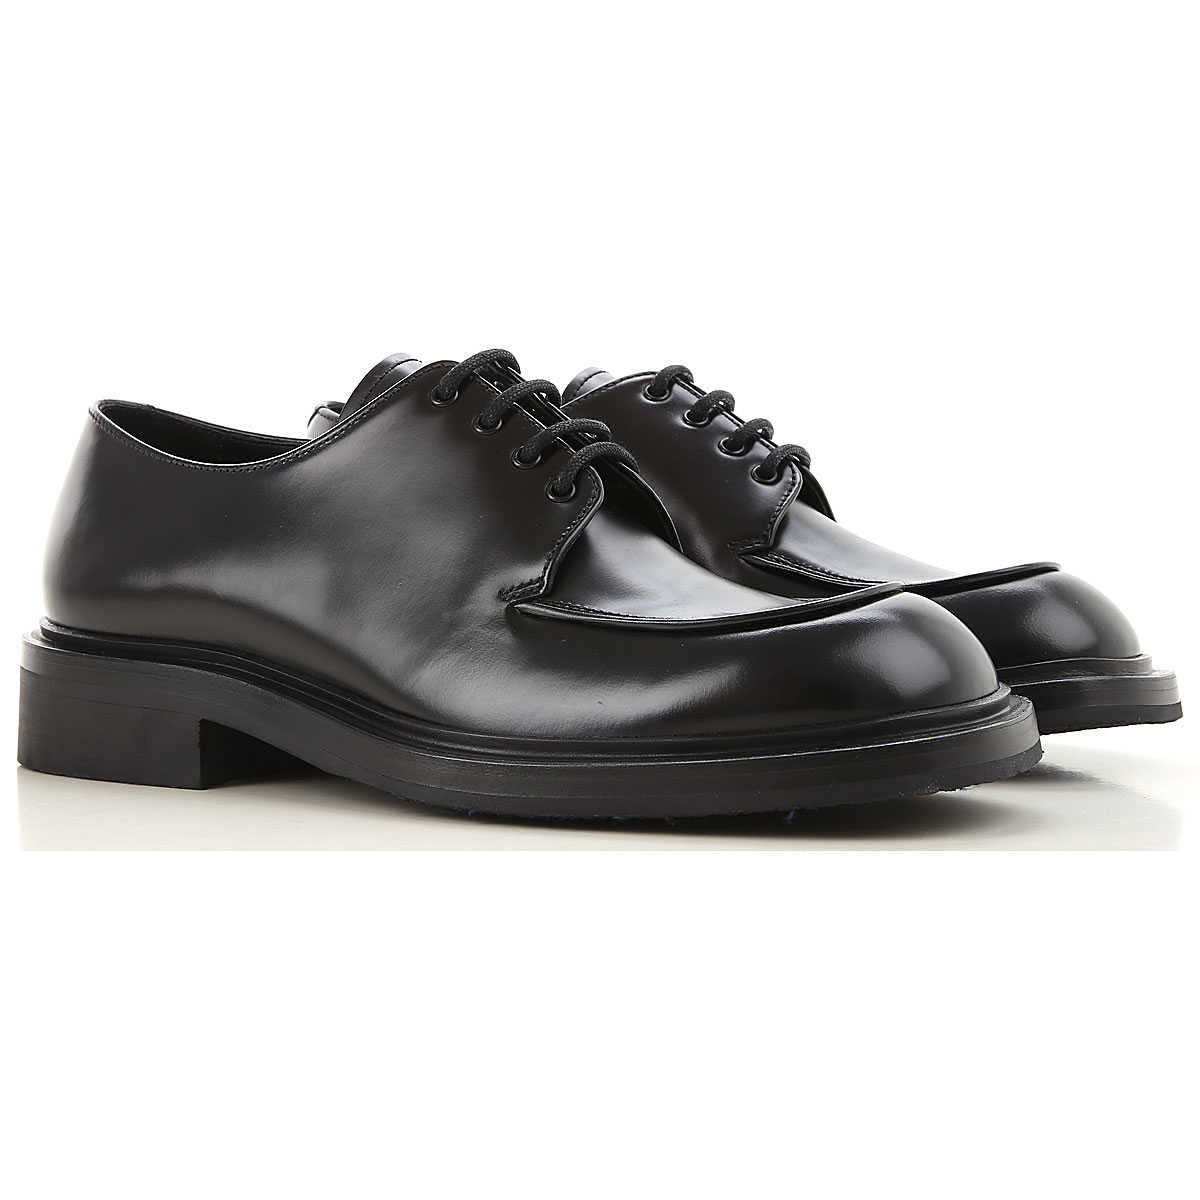 Prada Lace Up Shoes for Men Oxfords 10 6 7 7.5 8 Derbies and Brogues UK - GOOFASH